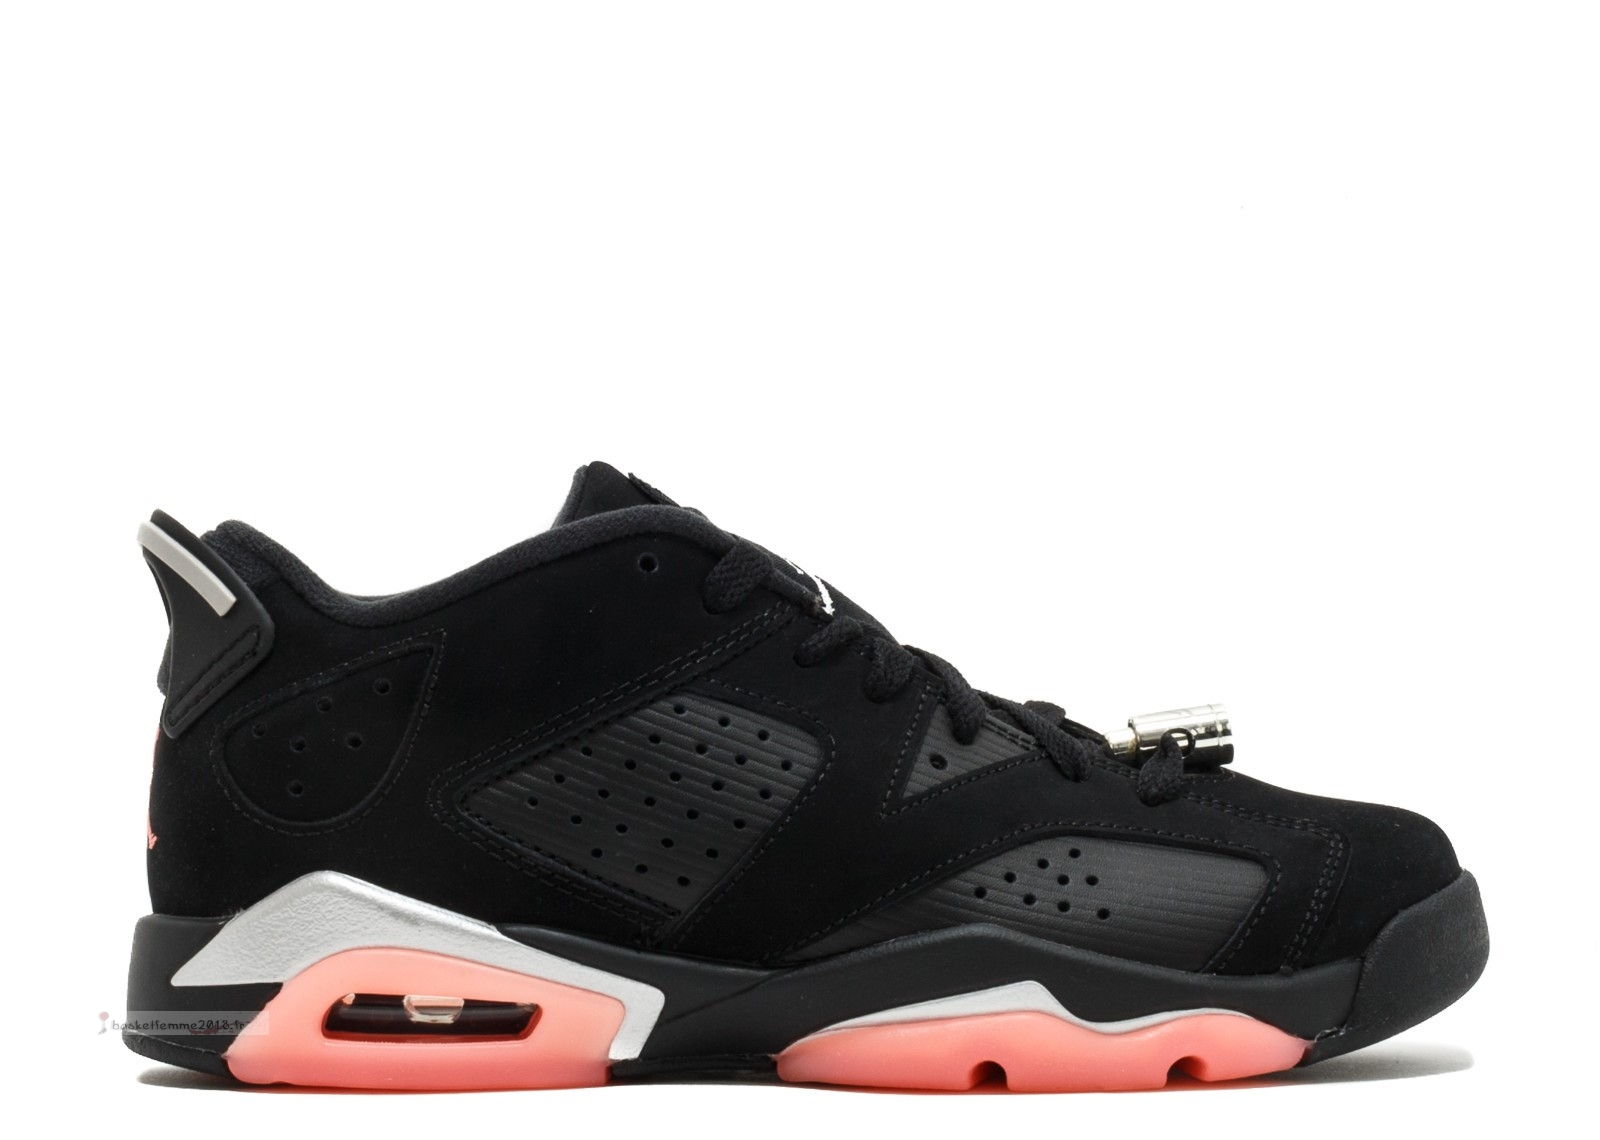 Air Jordan 6 Retro Low Gg Noir Orange (768878-022) Chaussure de Basket